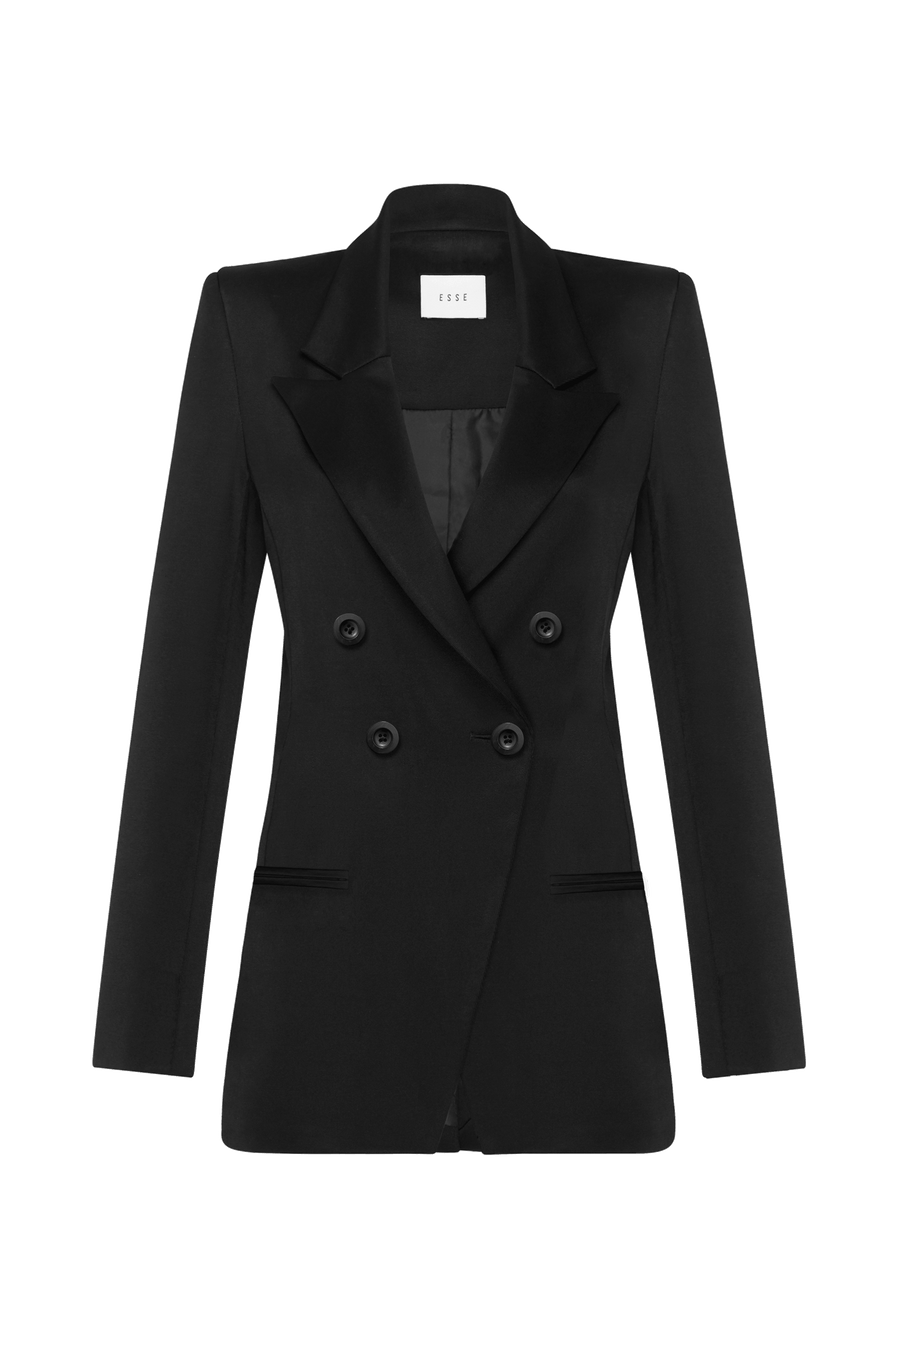 The Black Blazer